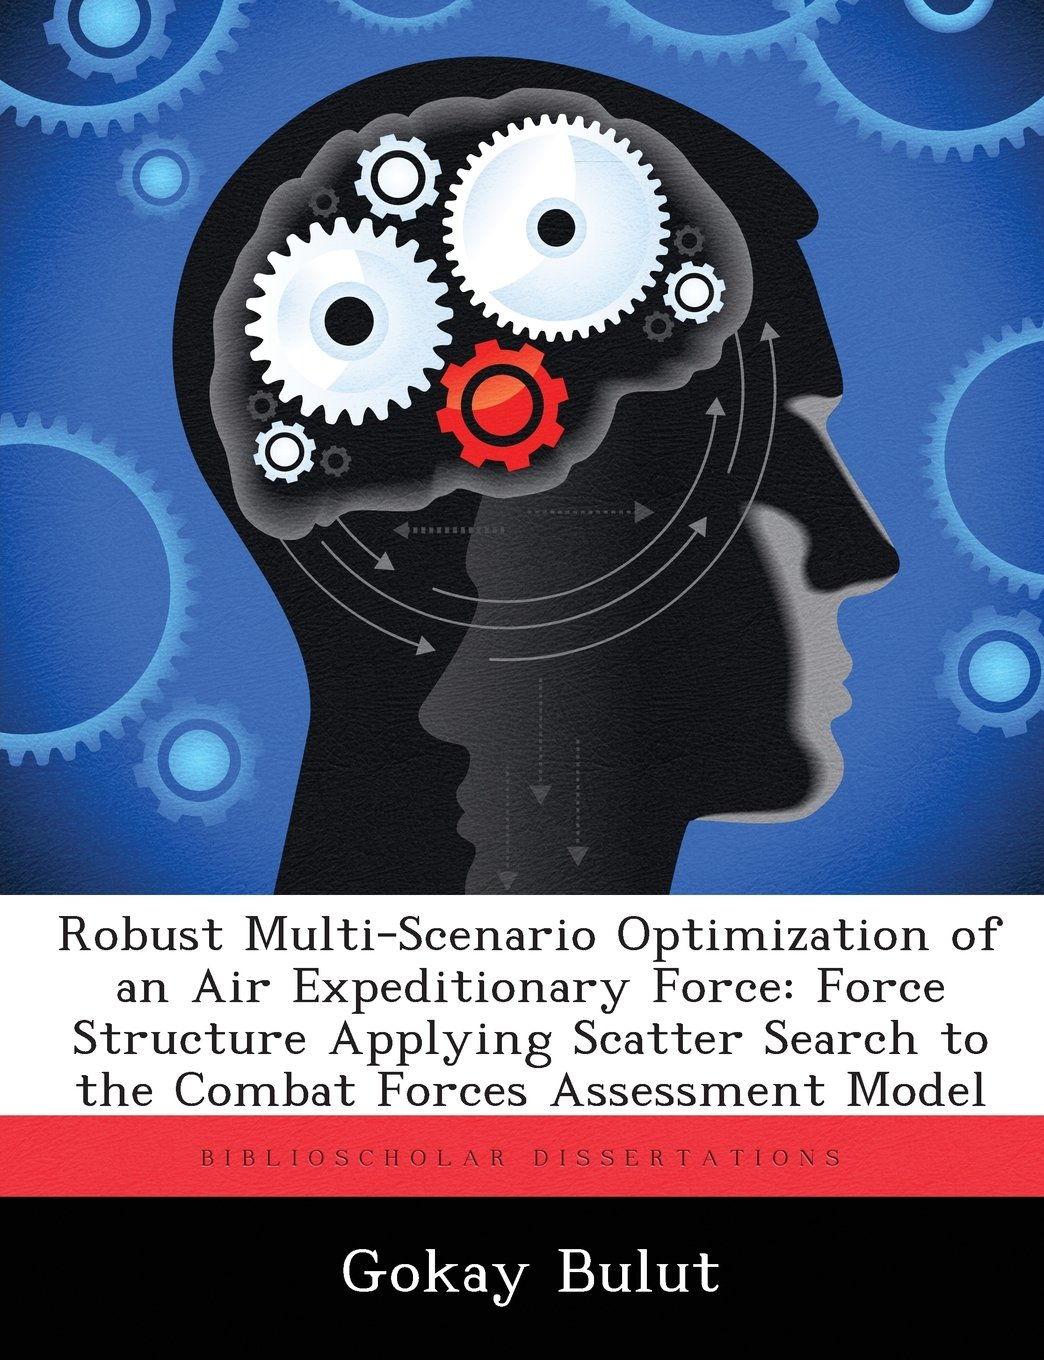 Read Online Robust Multi-Scenario Optimization of an Air Expeditionary Force: Force Structure Applying Scatter Search to the Combat Forces Assessment Model pdf